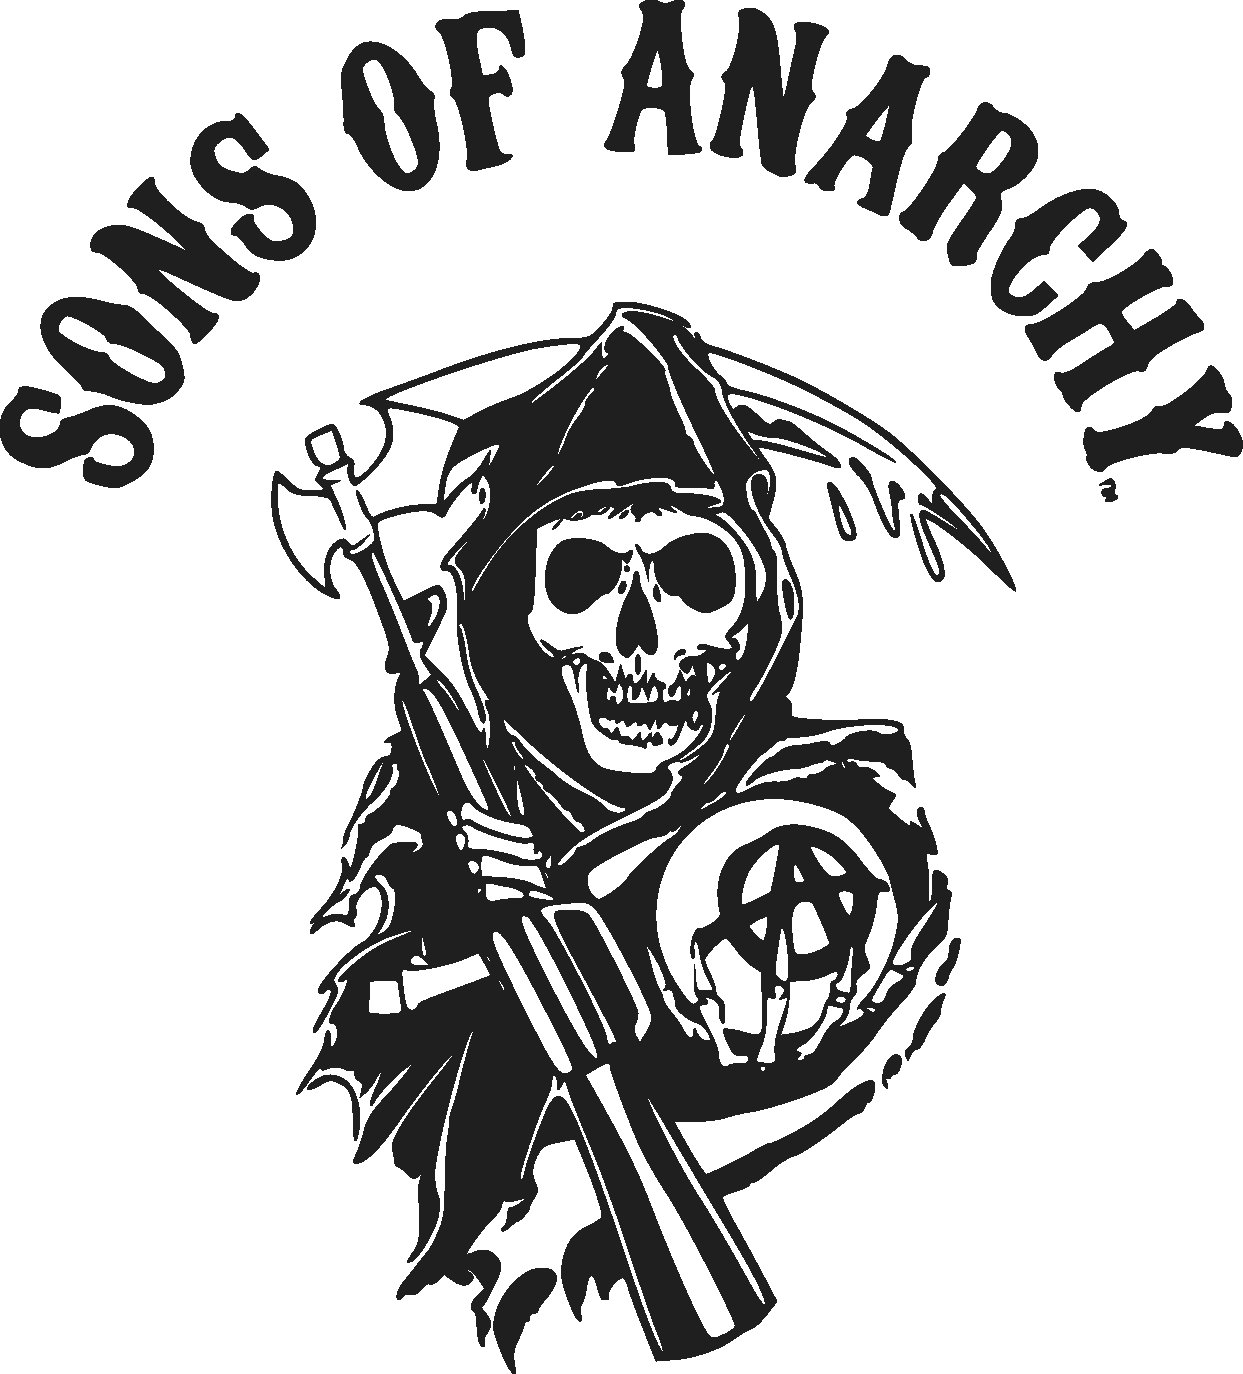 Sons of Anarchy Logo png